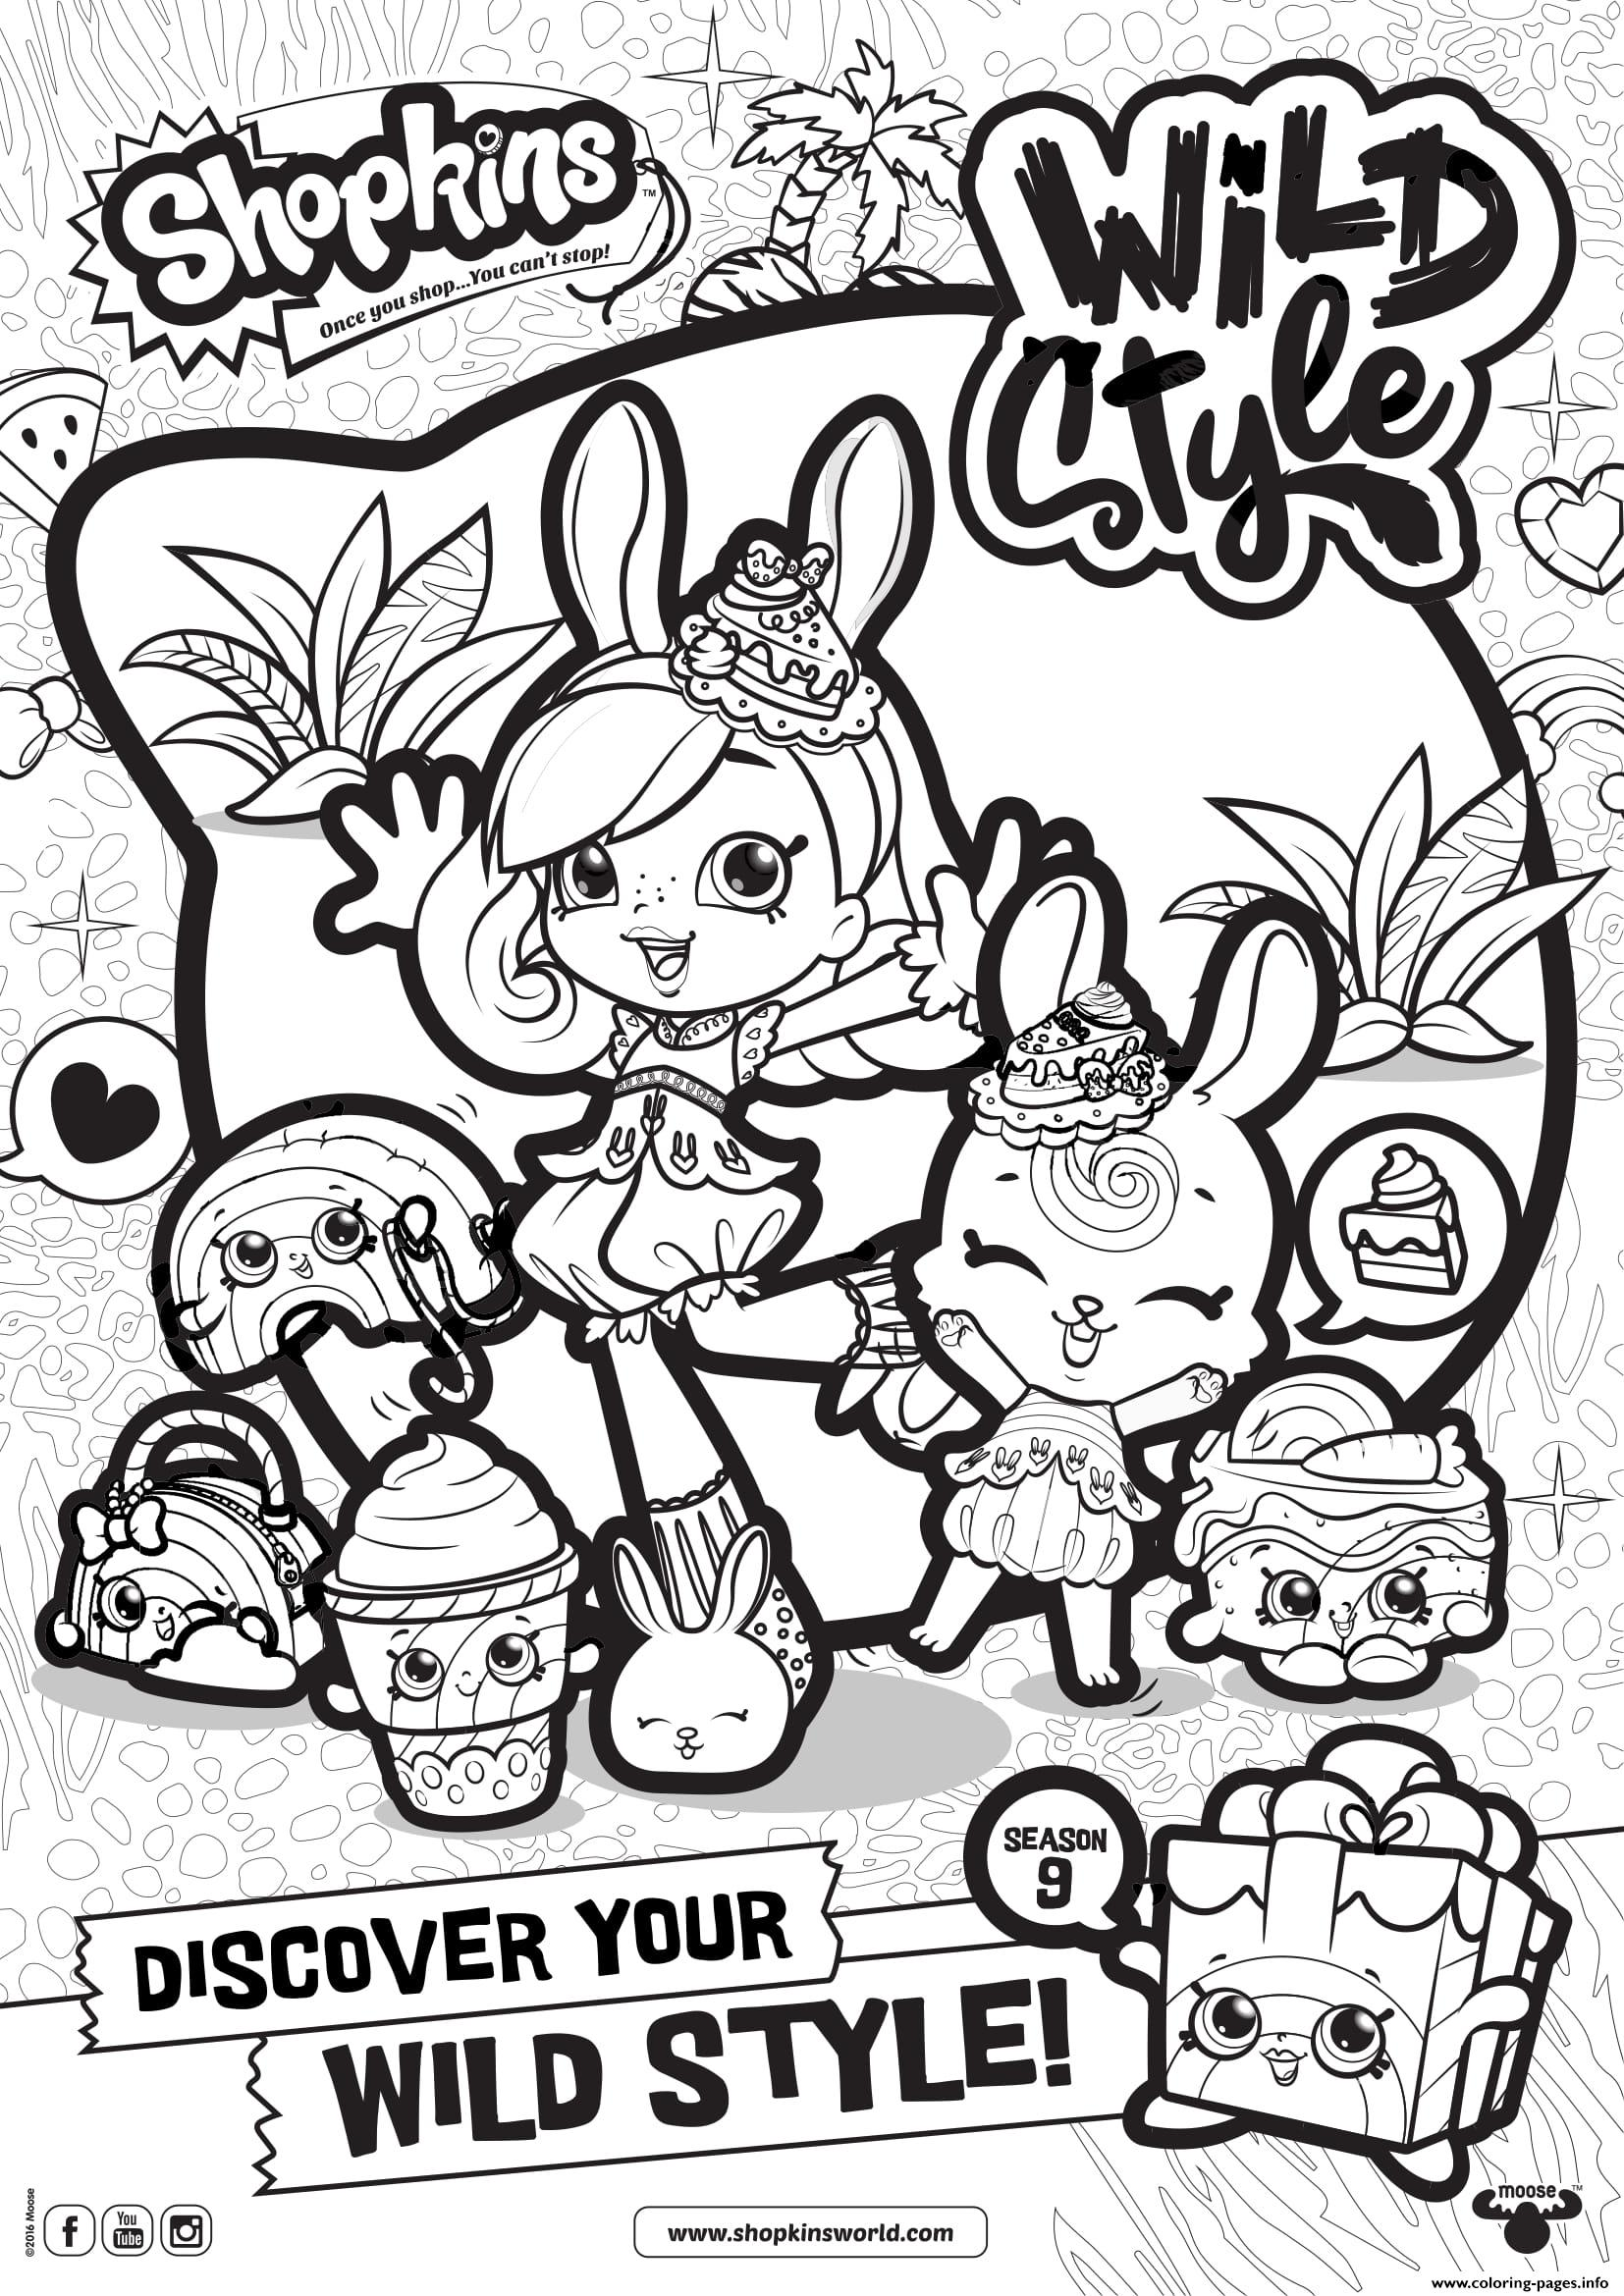 Shopkins Season 9 Wild Style 6 Coloring Pages Printable